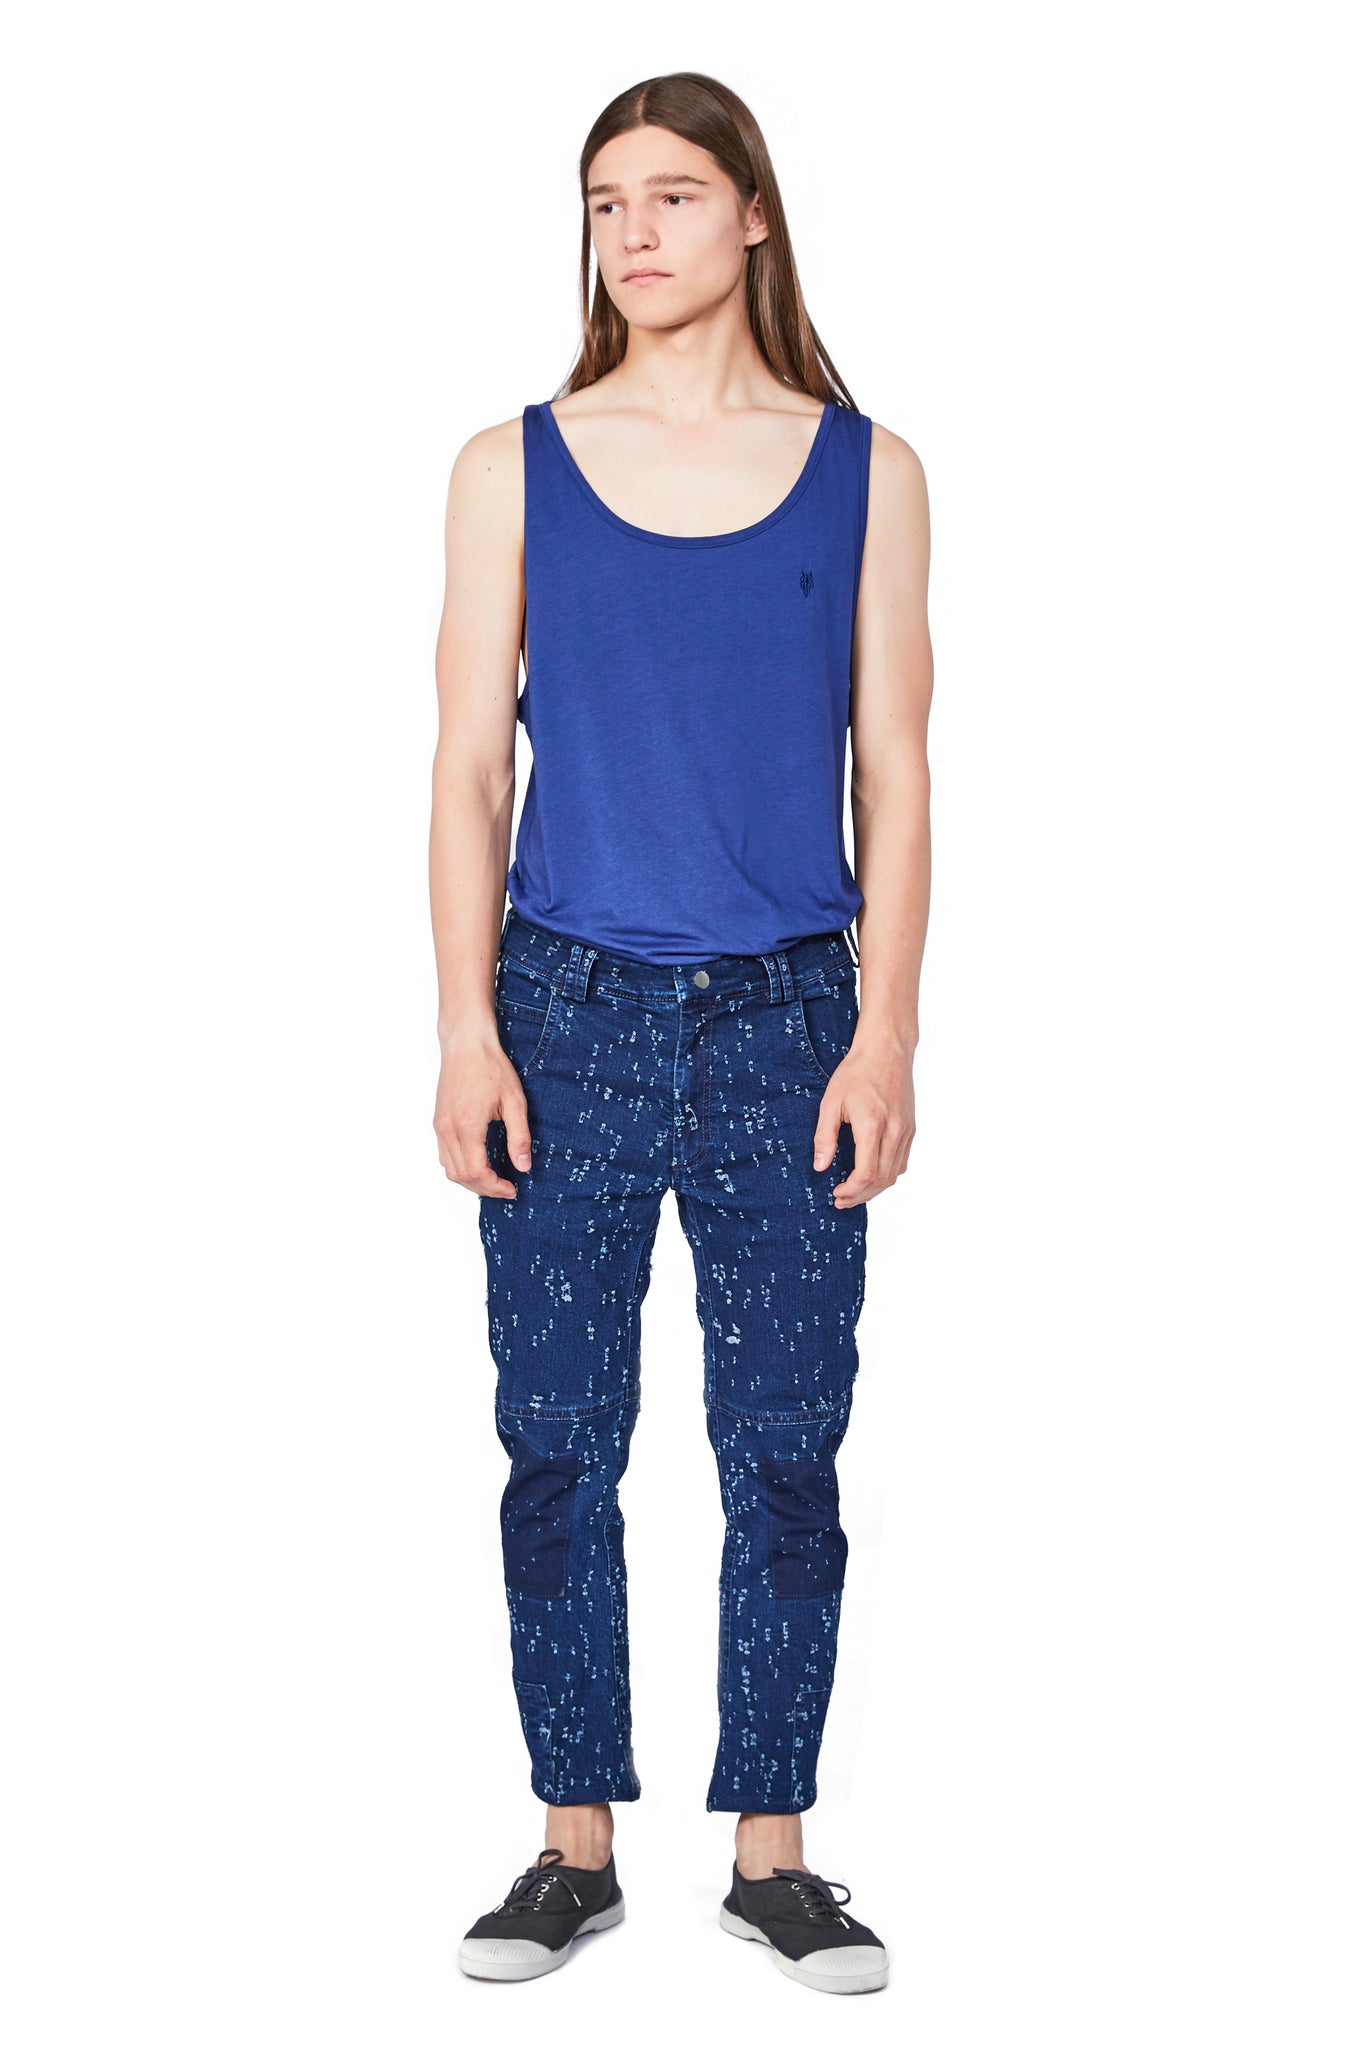 HOLEY unisex jeans - One Wolf